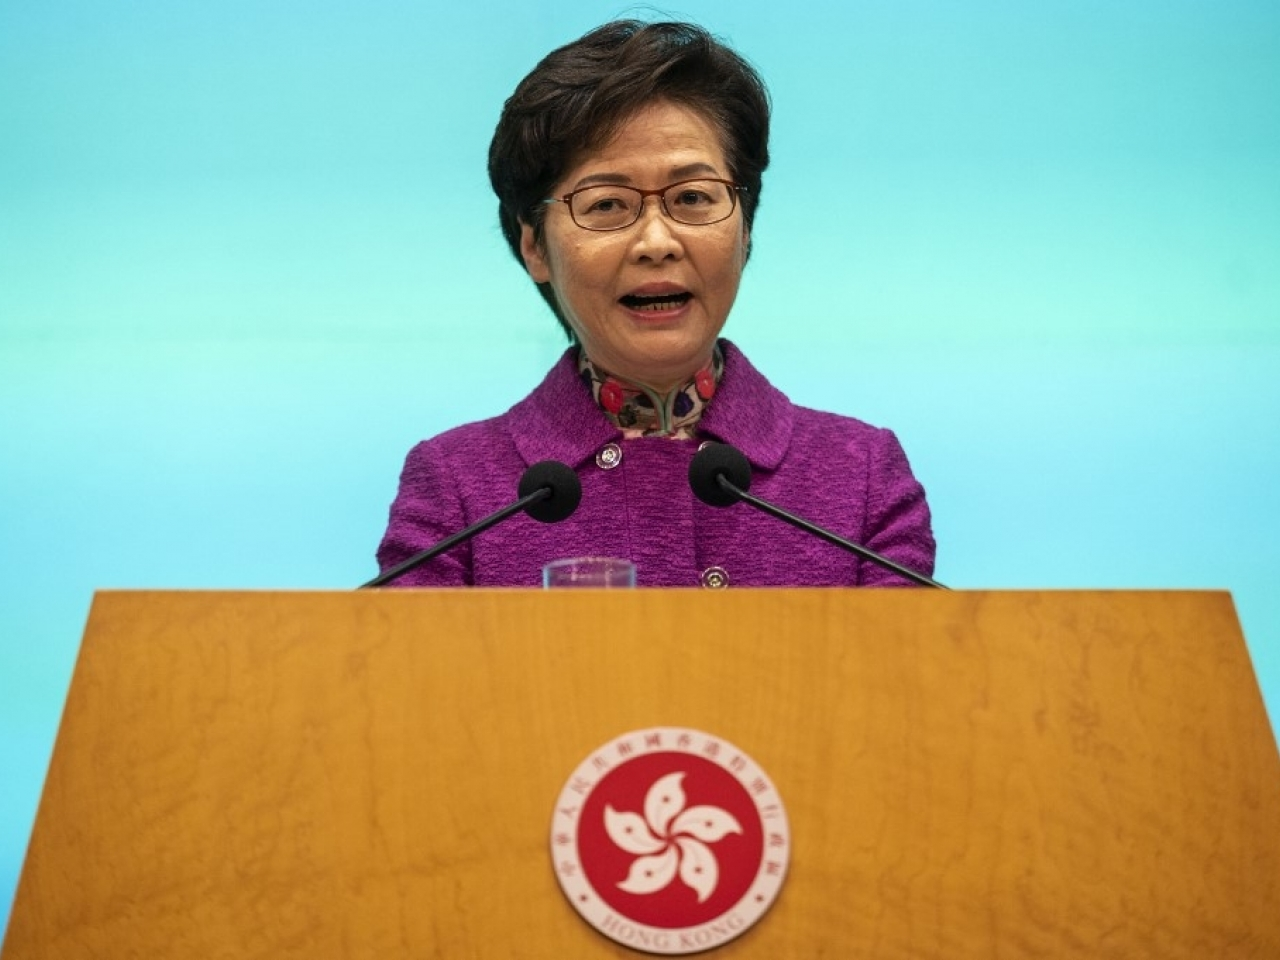 Carrie Lam was full of praise for her colleagues, Legco and the public, but had a few harsh words for foreign politicians and media. File photo: AFP